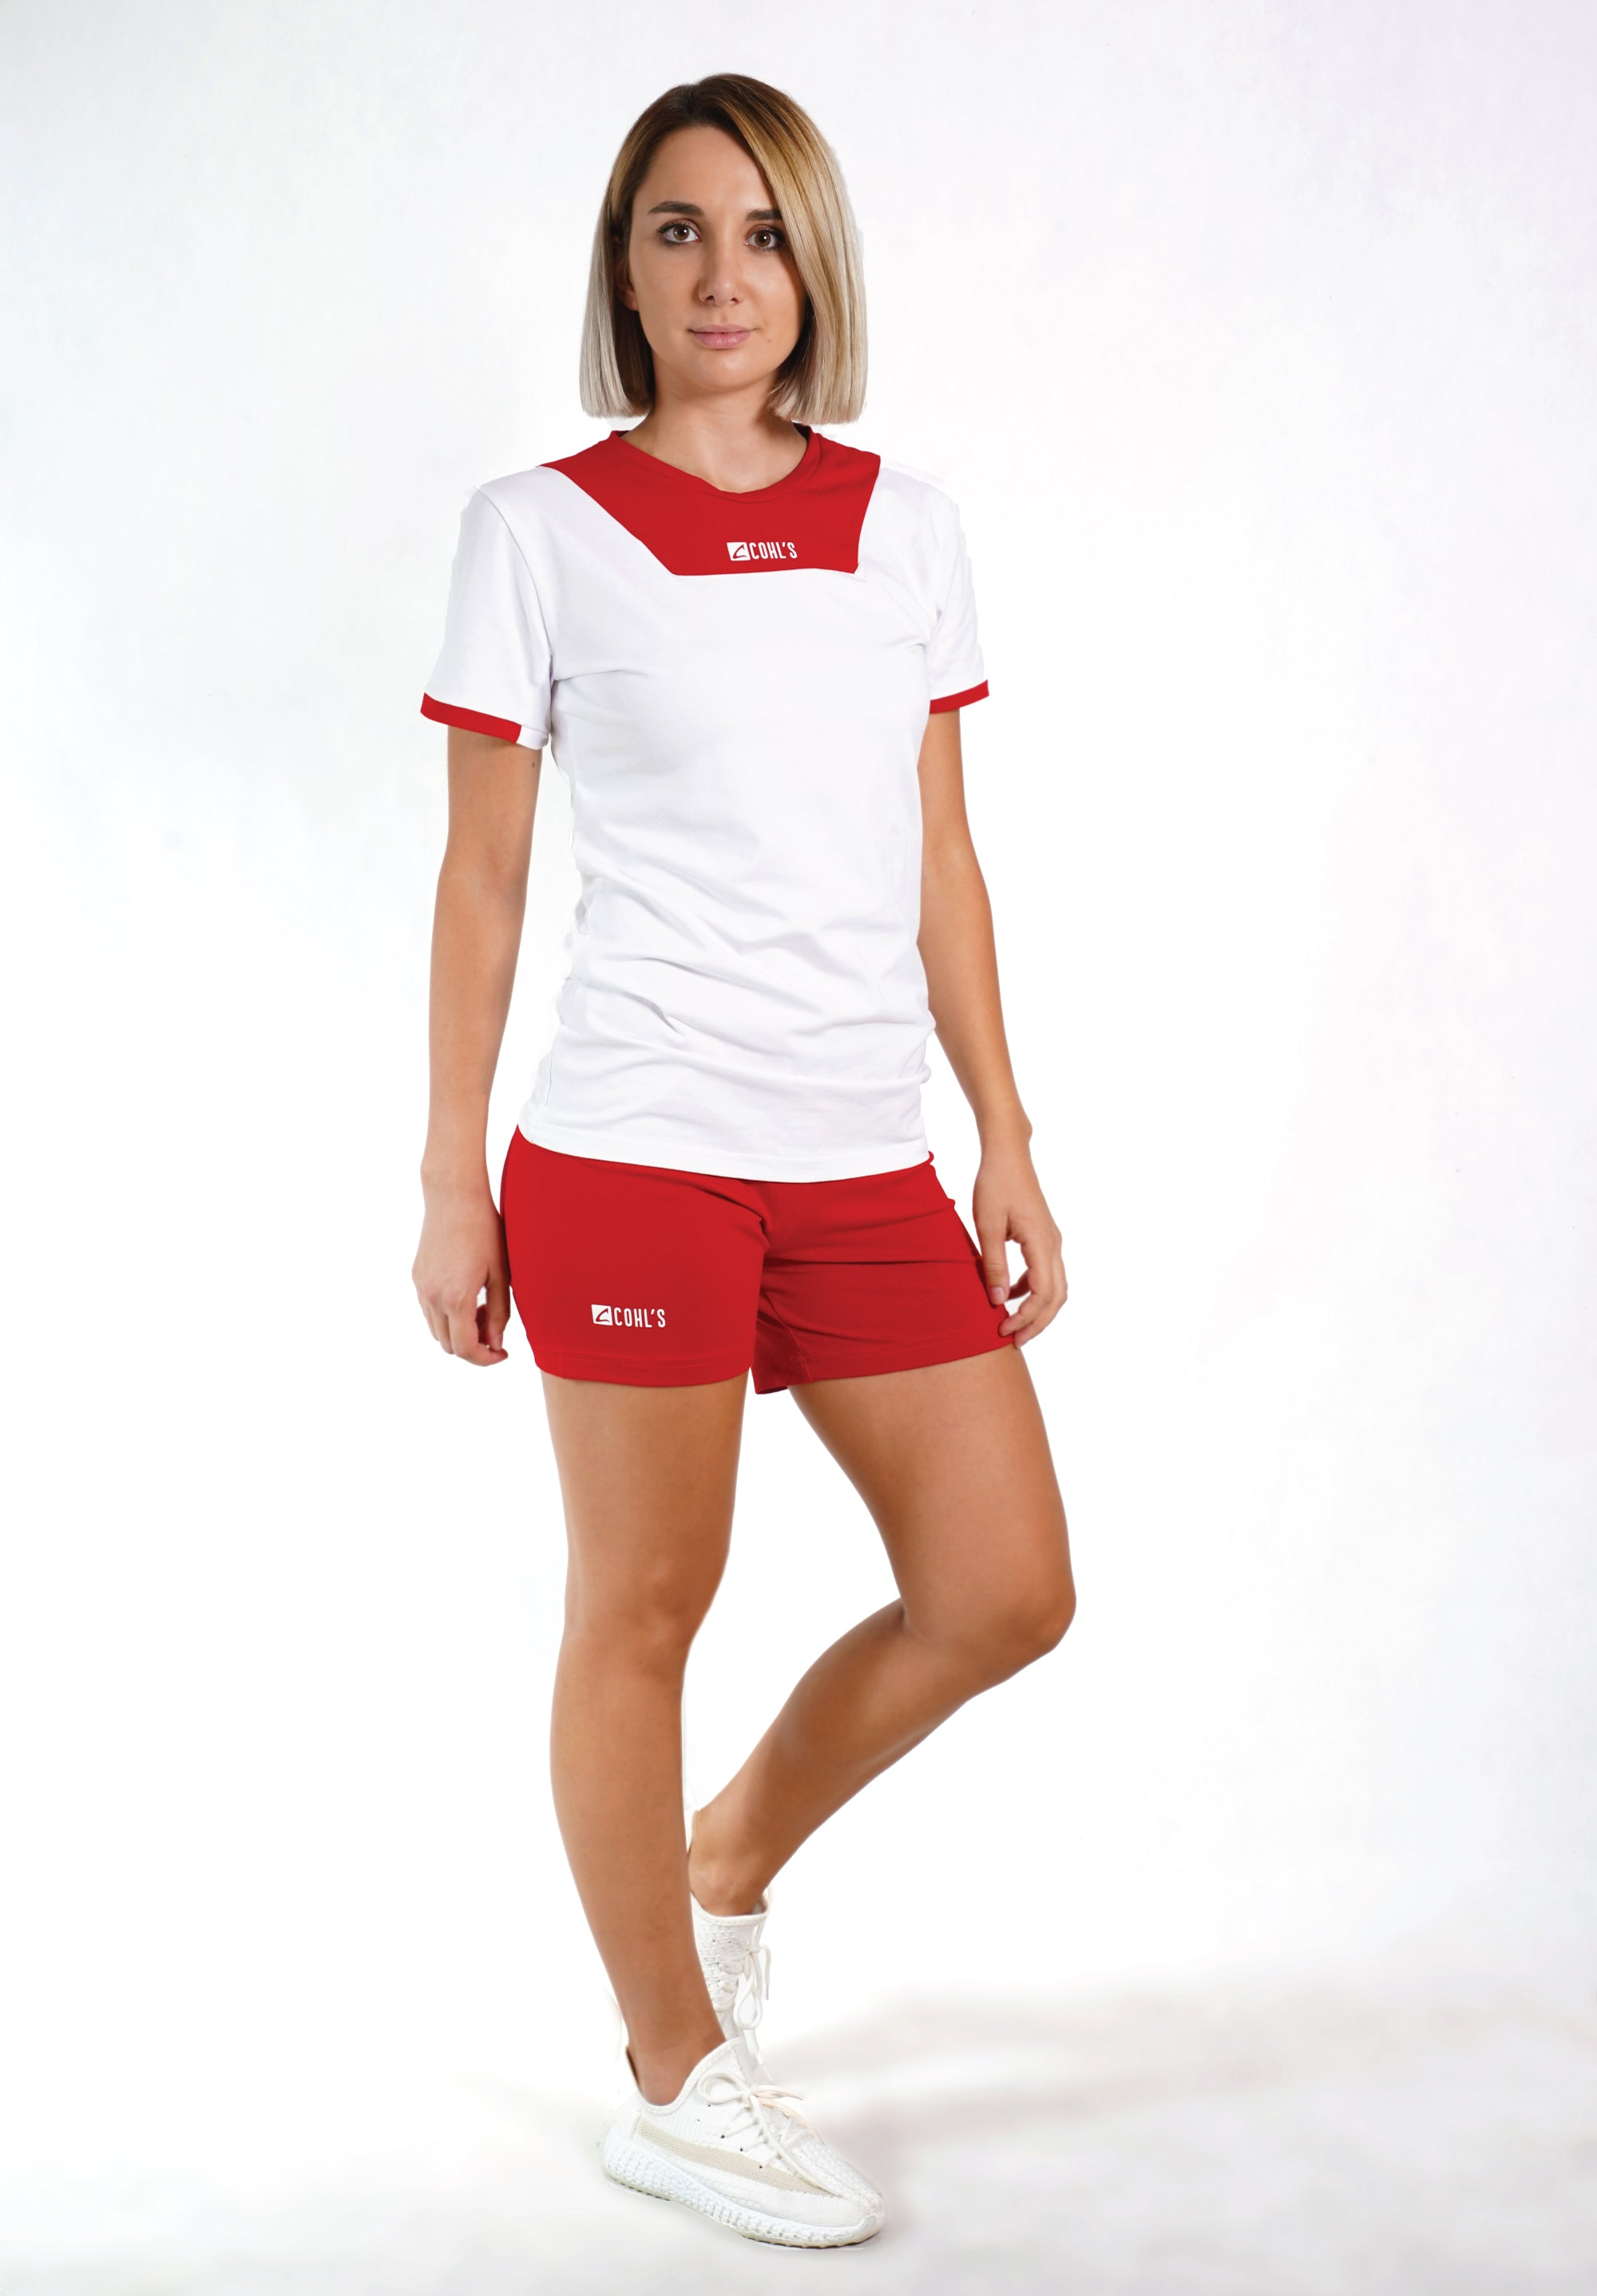 Volley Game Uniform - Female